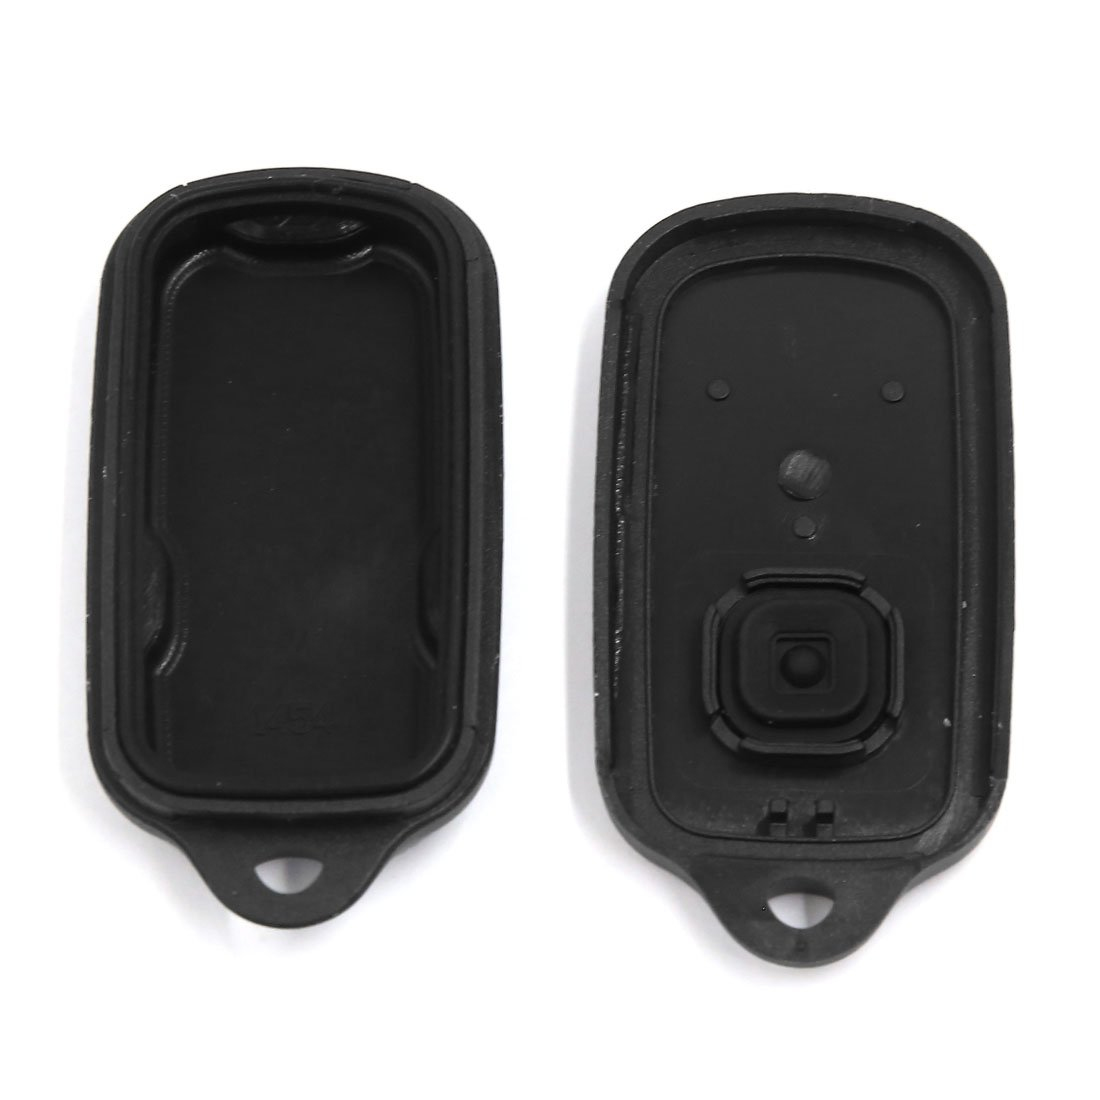 uxcell Keyless Entry Remote Shell Case Fob 3 Buttons for Toyota Pontiac Lexus Scion xB